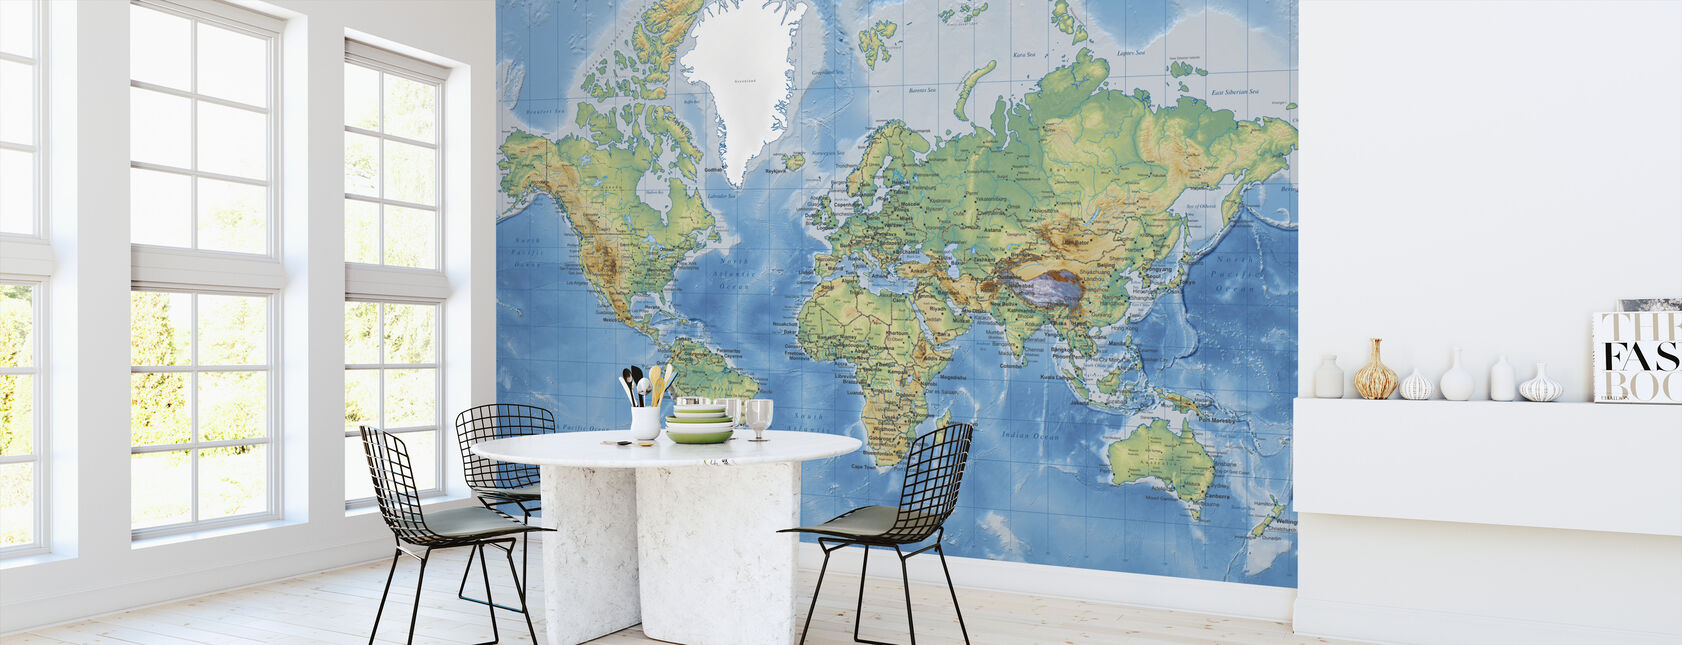 World Map Detailed - Wallpaper - Kitchen